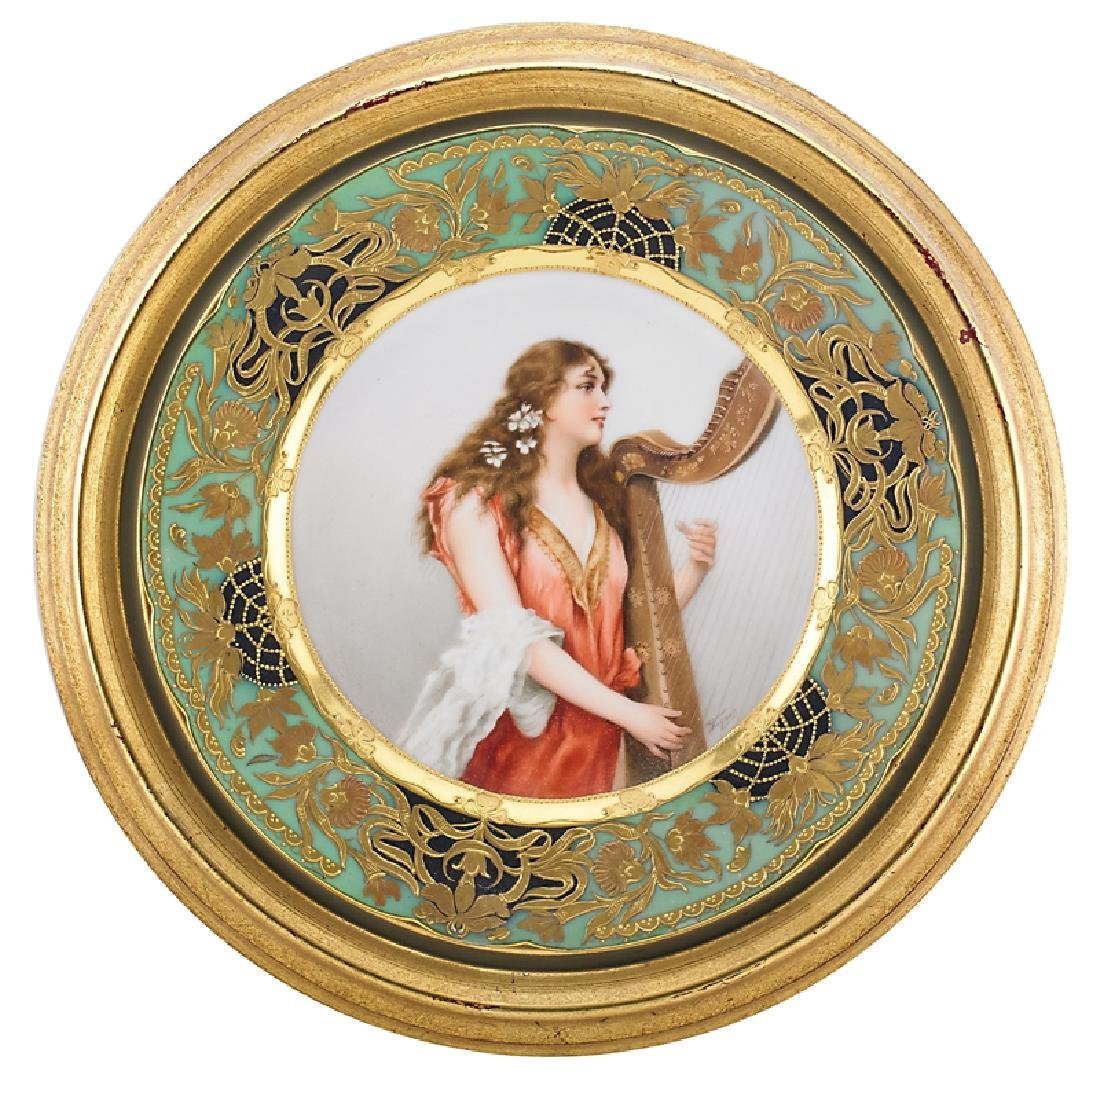 VIENNA STYLE PORCELAIN CABINET PLATE